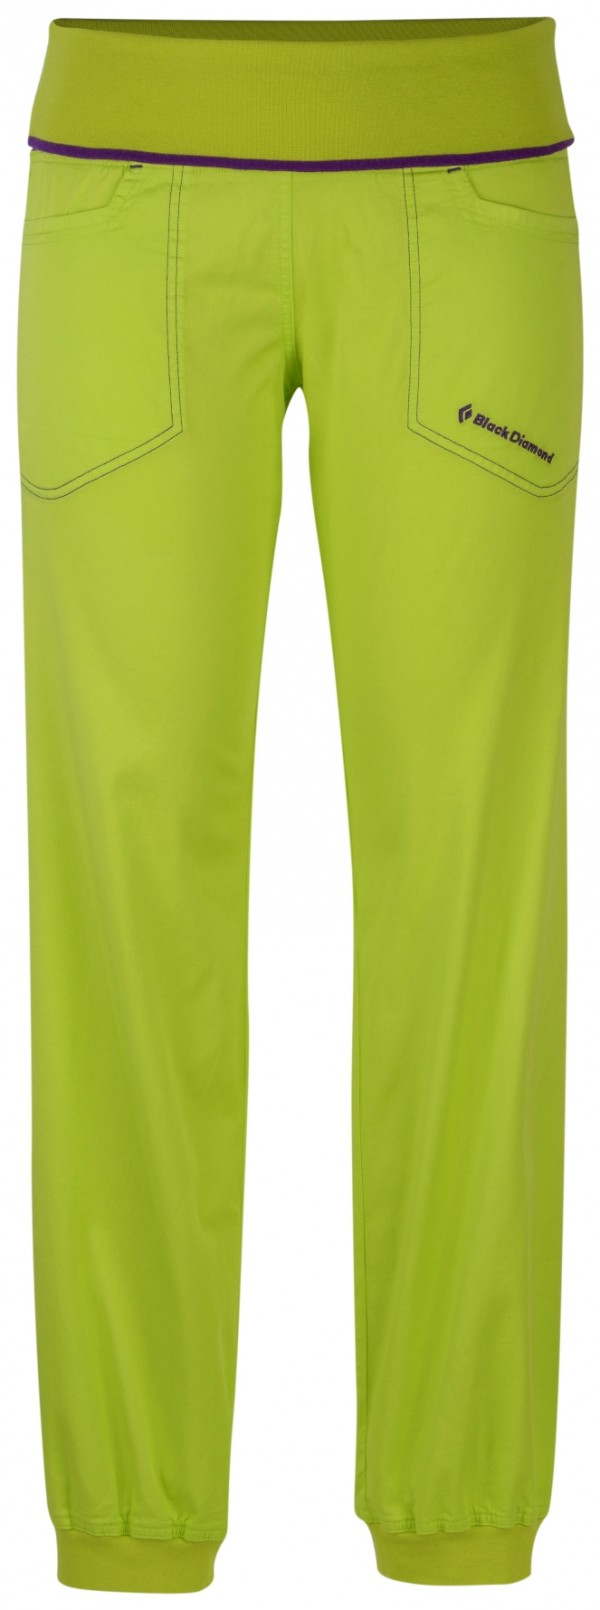 OI5C_380_ALOE_NotionPants_Front_W